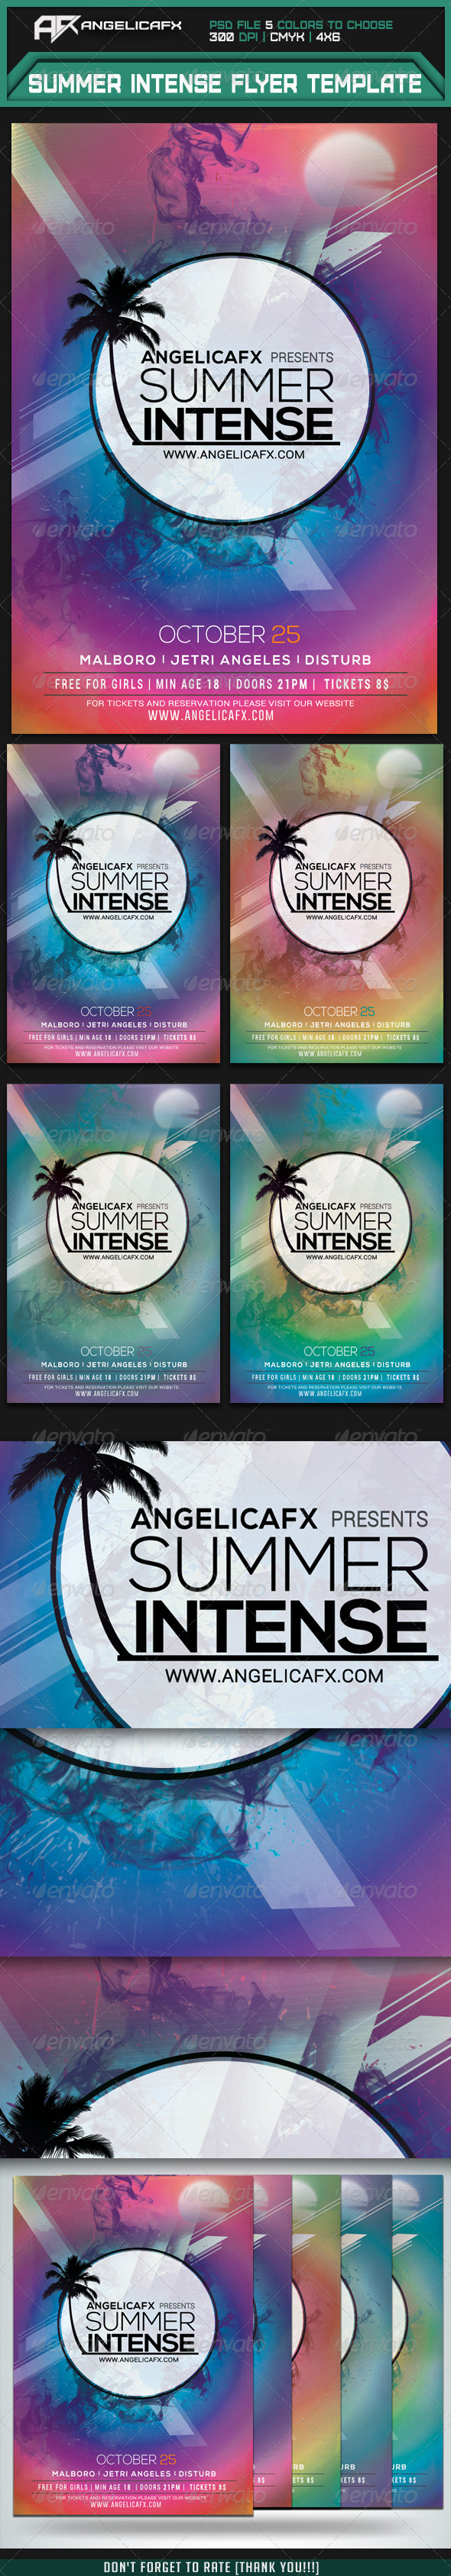 GraphicRiver Summer Intense Flyer Template 7415213